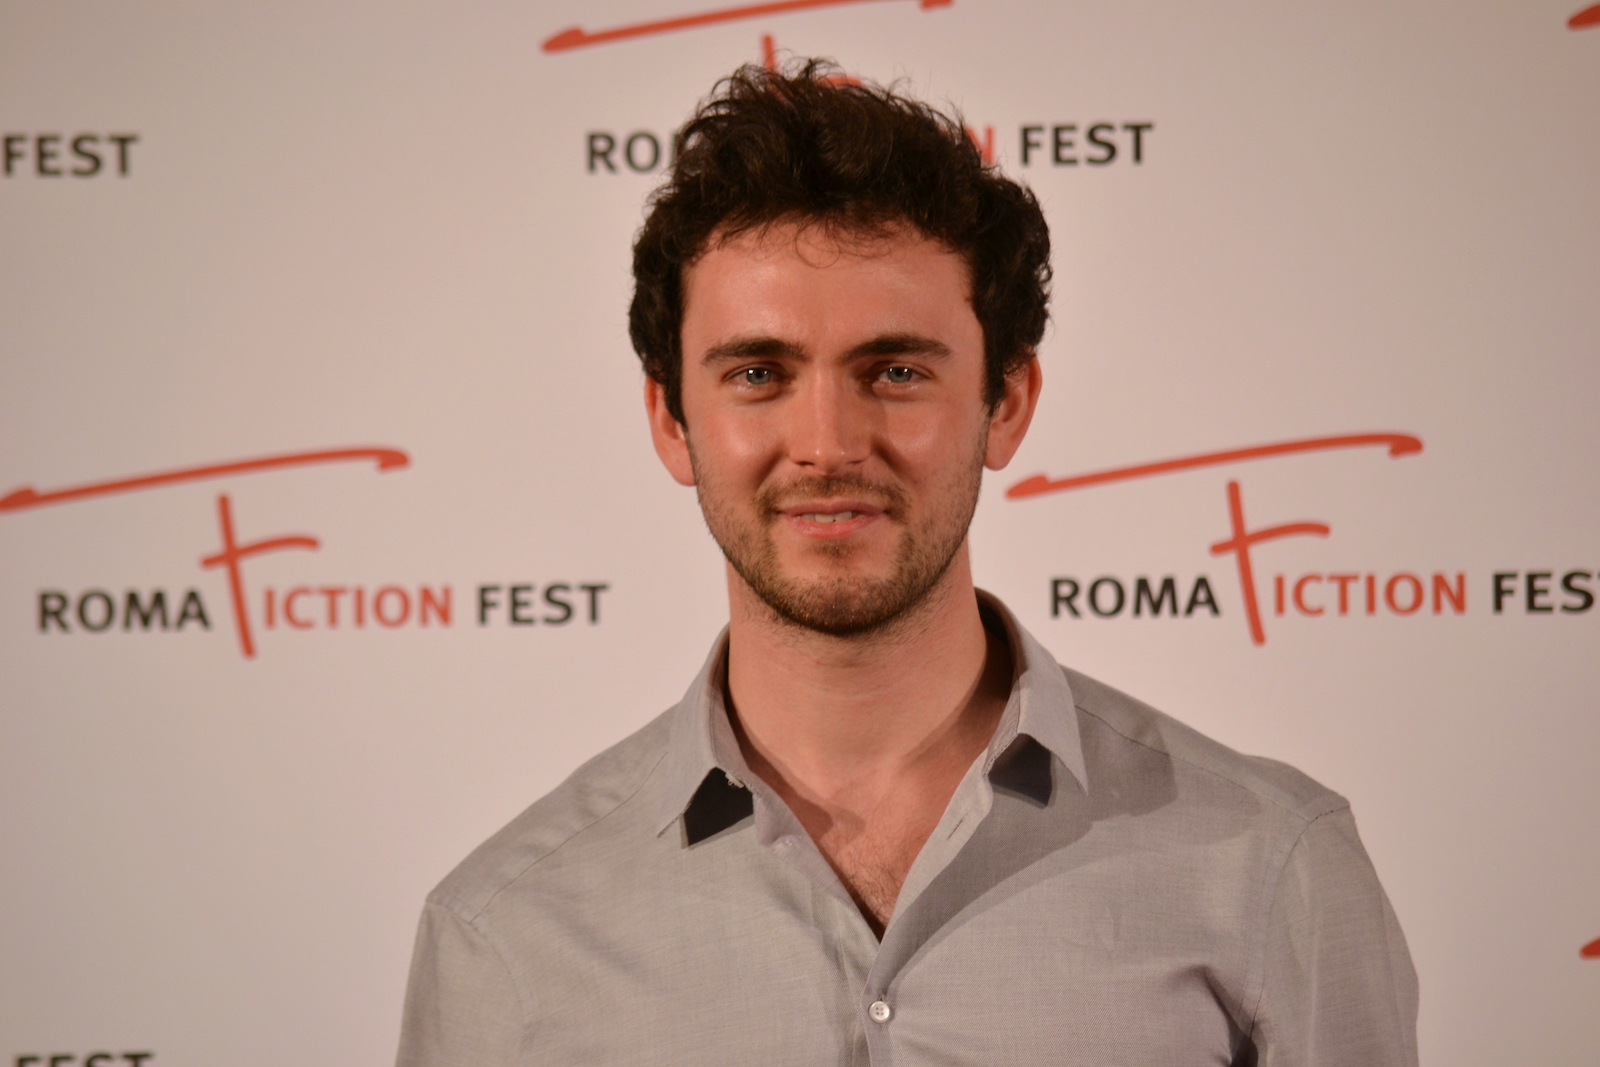 Roma Fiction Fest 2015: George Blagden in uno scatto al photocall di Versailles